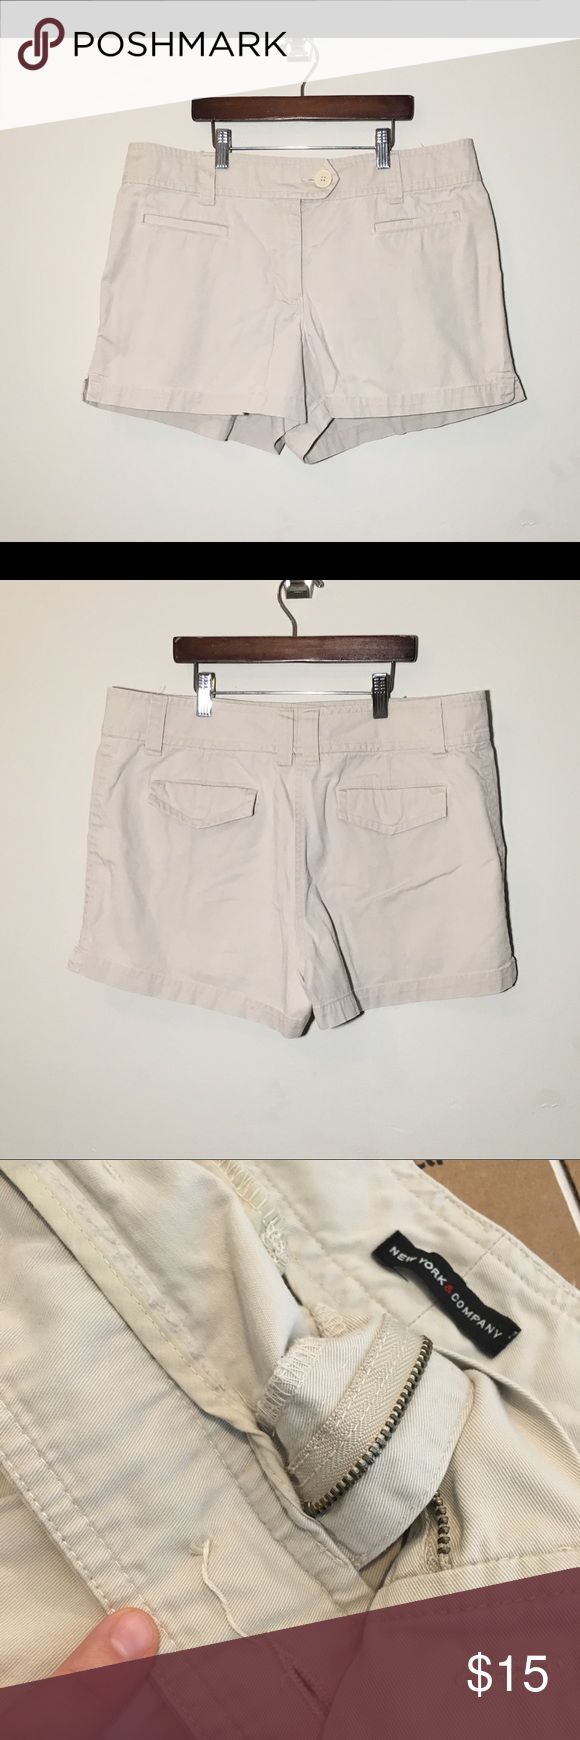 [New York & Co.] woman's sz 14 khaki shorts Soft and very comfortable khaki shorts. Sz 14. Ready for your spring closet.   *missing front button. See pictures *  Offers welcome ☺️ New York & Company Shorts